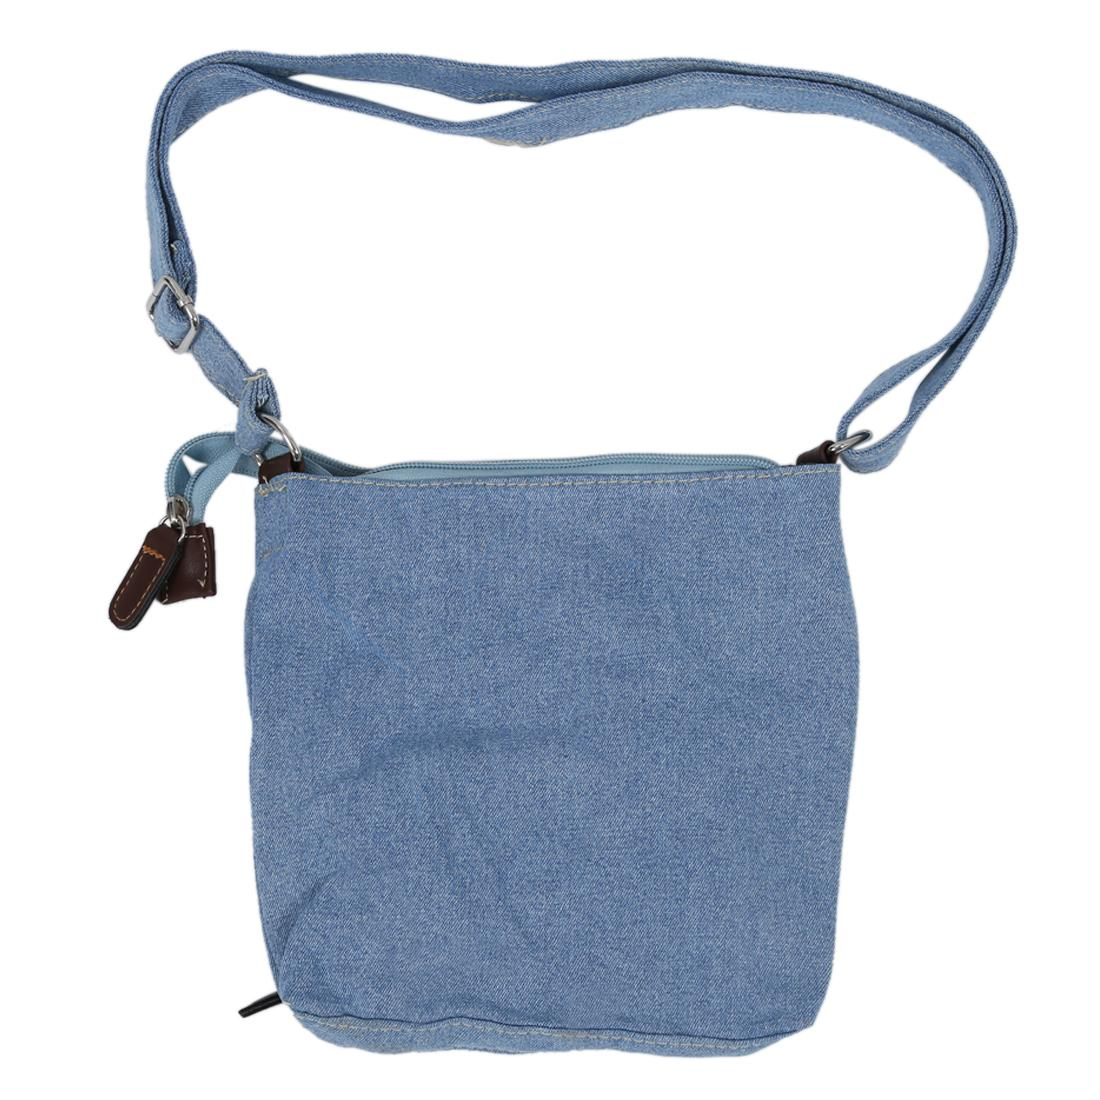 a04e4f6349d3 fashion retro denim crossbody bag women classic canvas pochette casual  zipper soft messenger small shoulder bags Light Blue